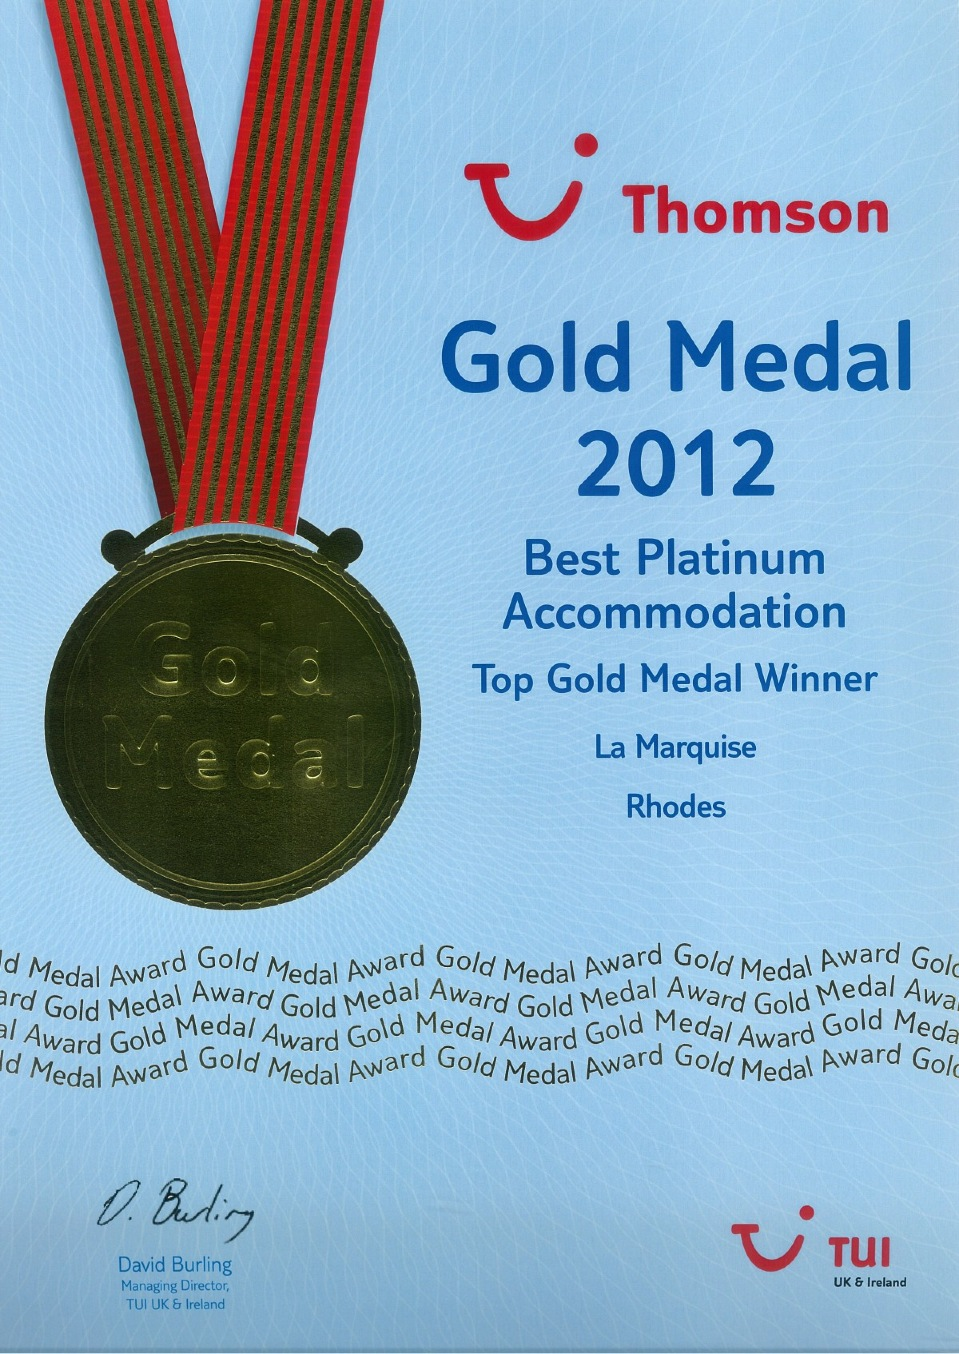 Thomson_Gold_Medal_2012